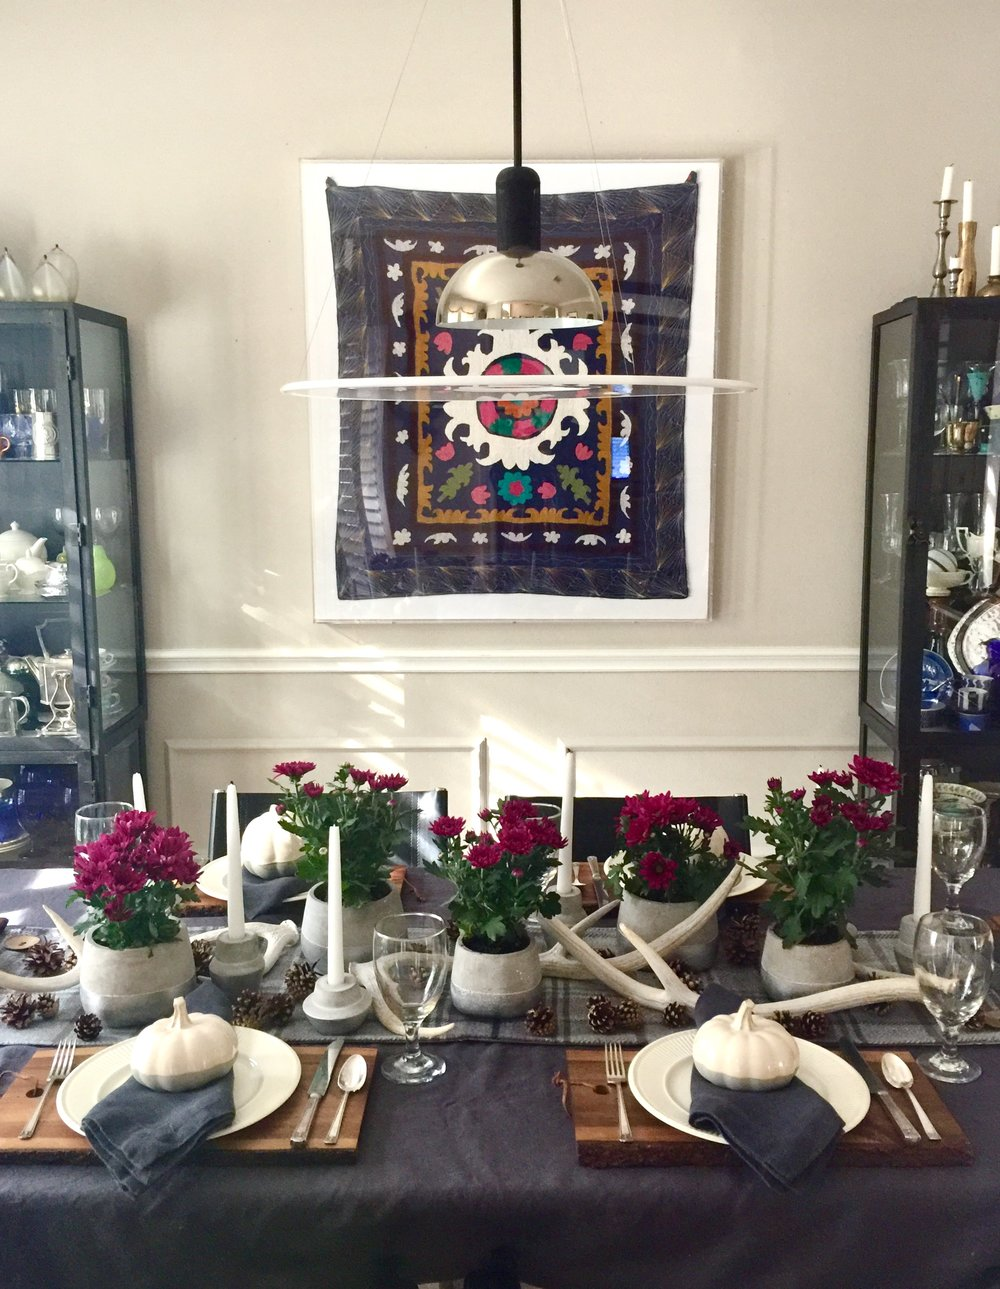 Dining room - Thanksgiving table 2017 with new textile wall decor